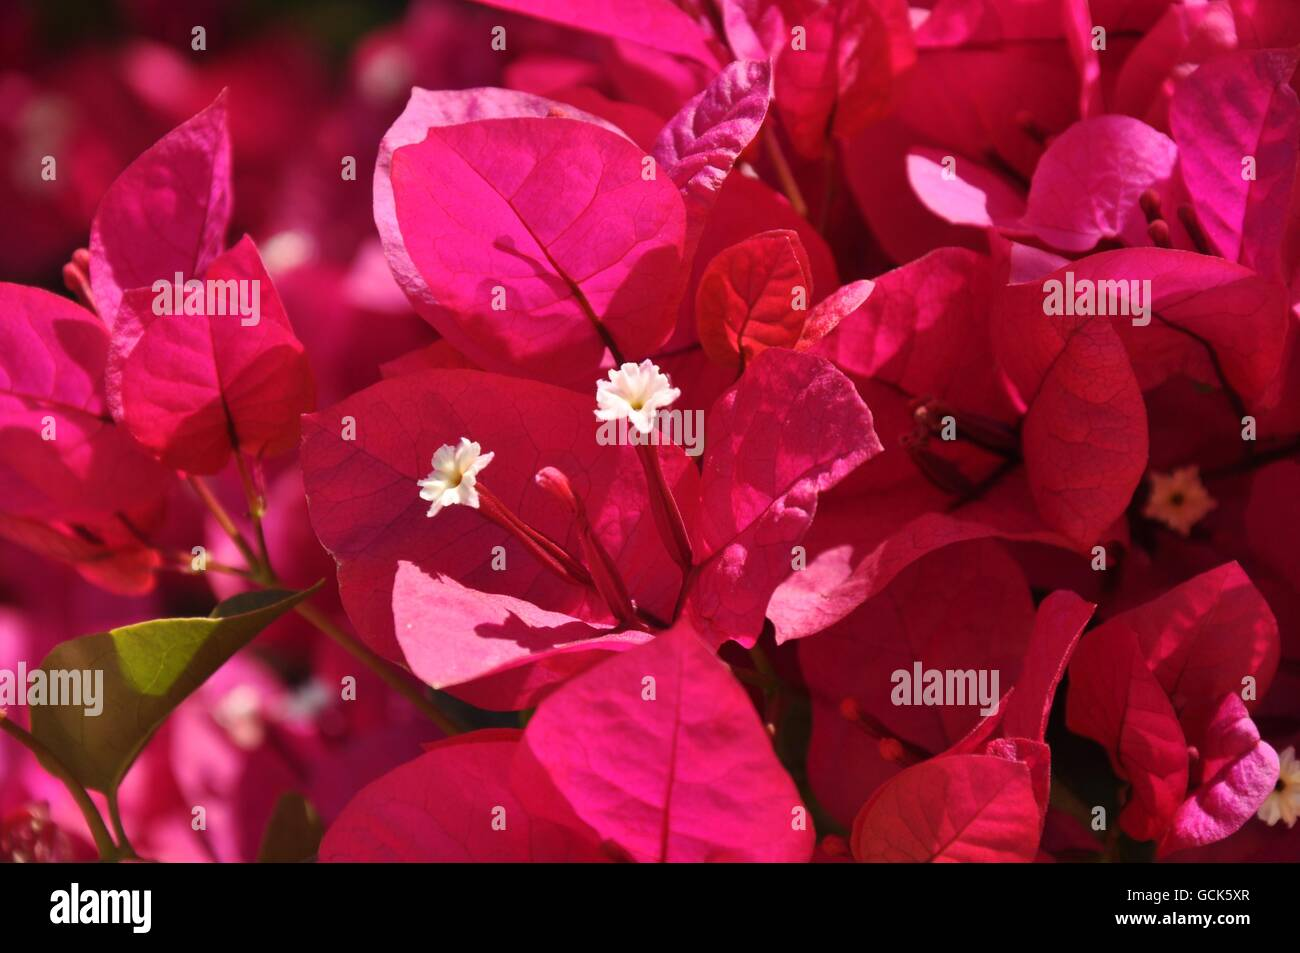 Bright pink floral background with hot pink leaves and white stamens bright pink floral background with hot pink leaves and white stamens in garden setting in western australia mightylinksfo